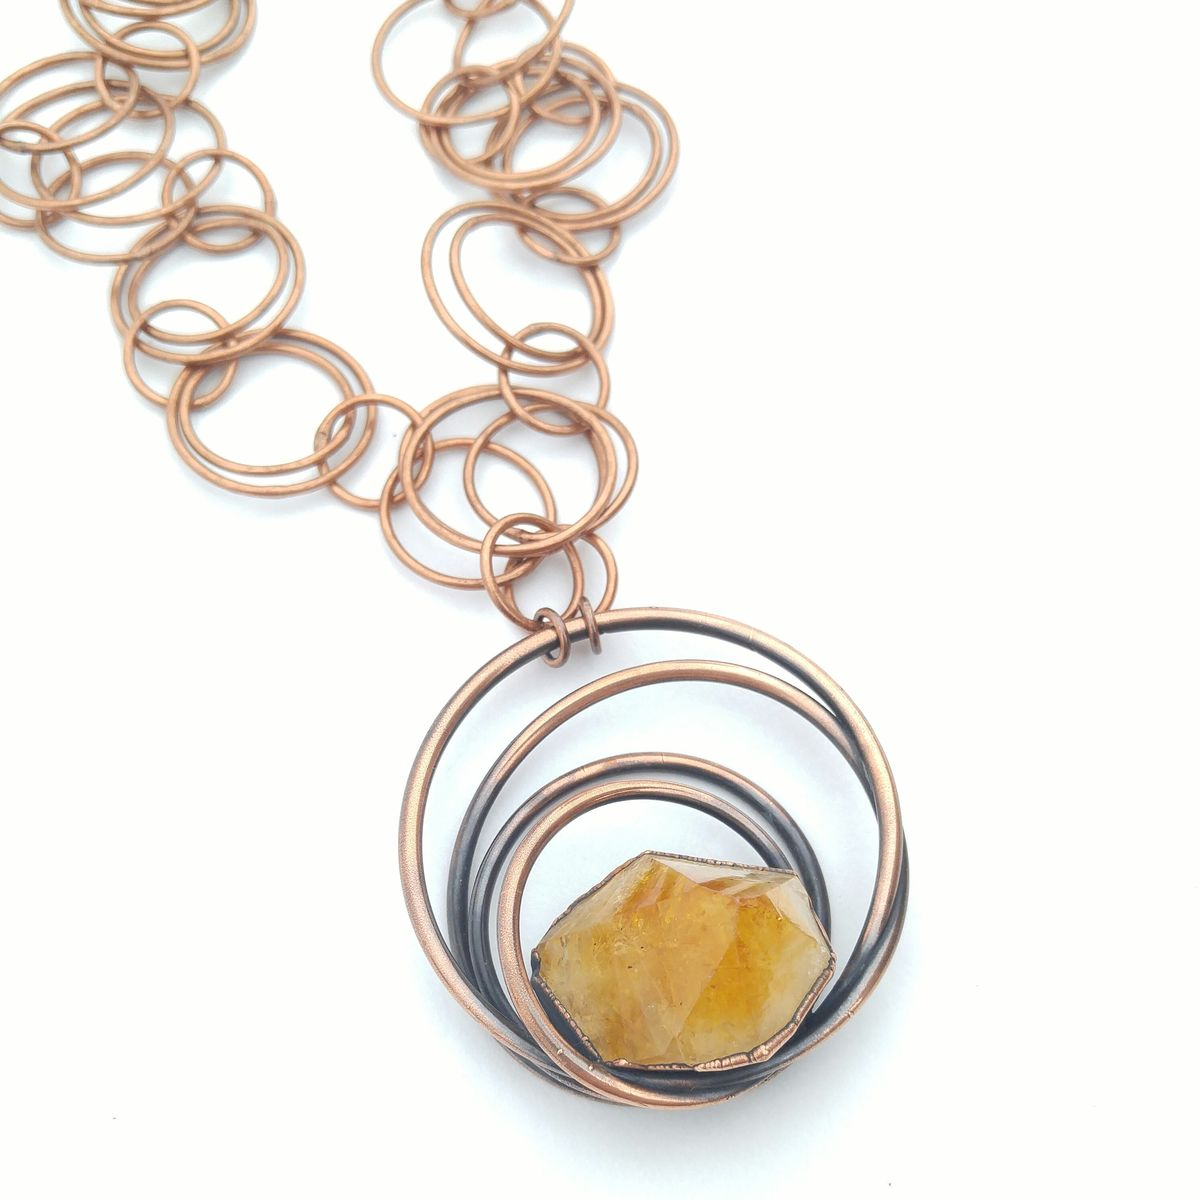 Citrine Galaxy Necklace - product images  of